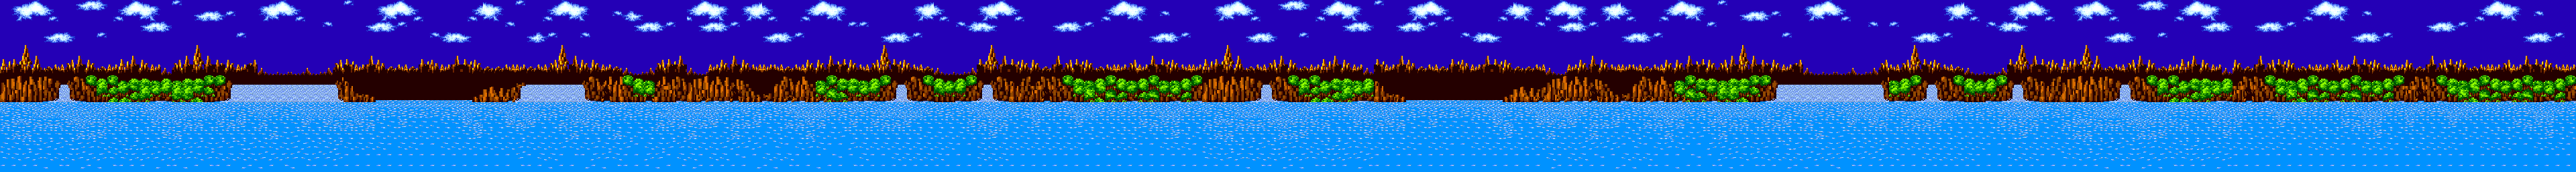 Green Hill Zone Background